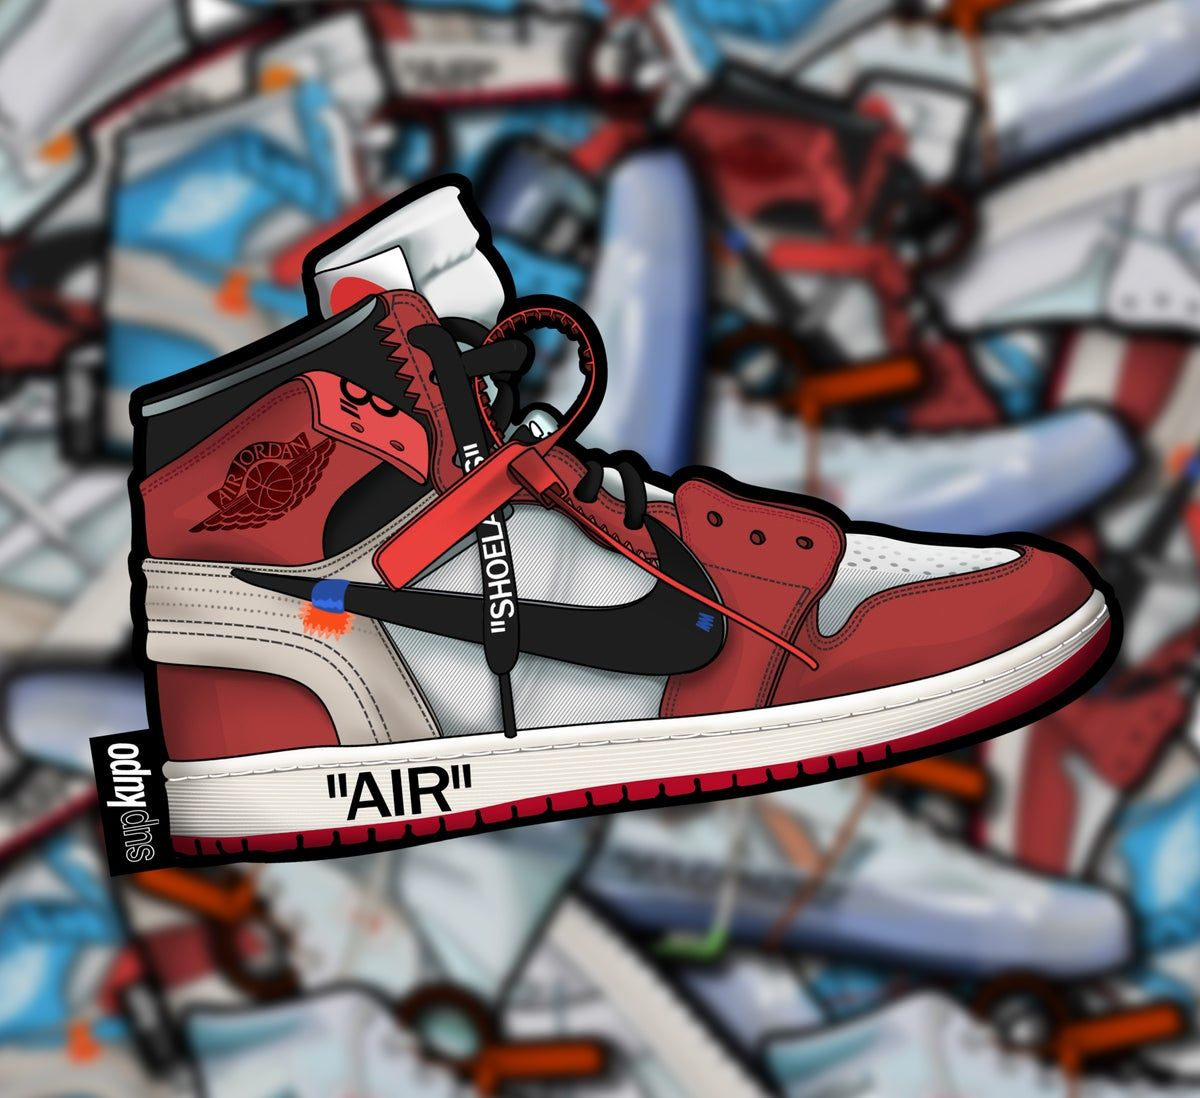 Walter Cunningham Comportamiento arroz  Image of Air Jordan 1 OW Collection | Stylish sneakers, Sneakers sketch,  Shoe design sketches